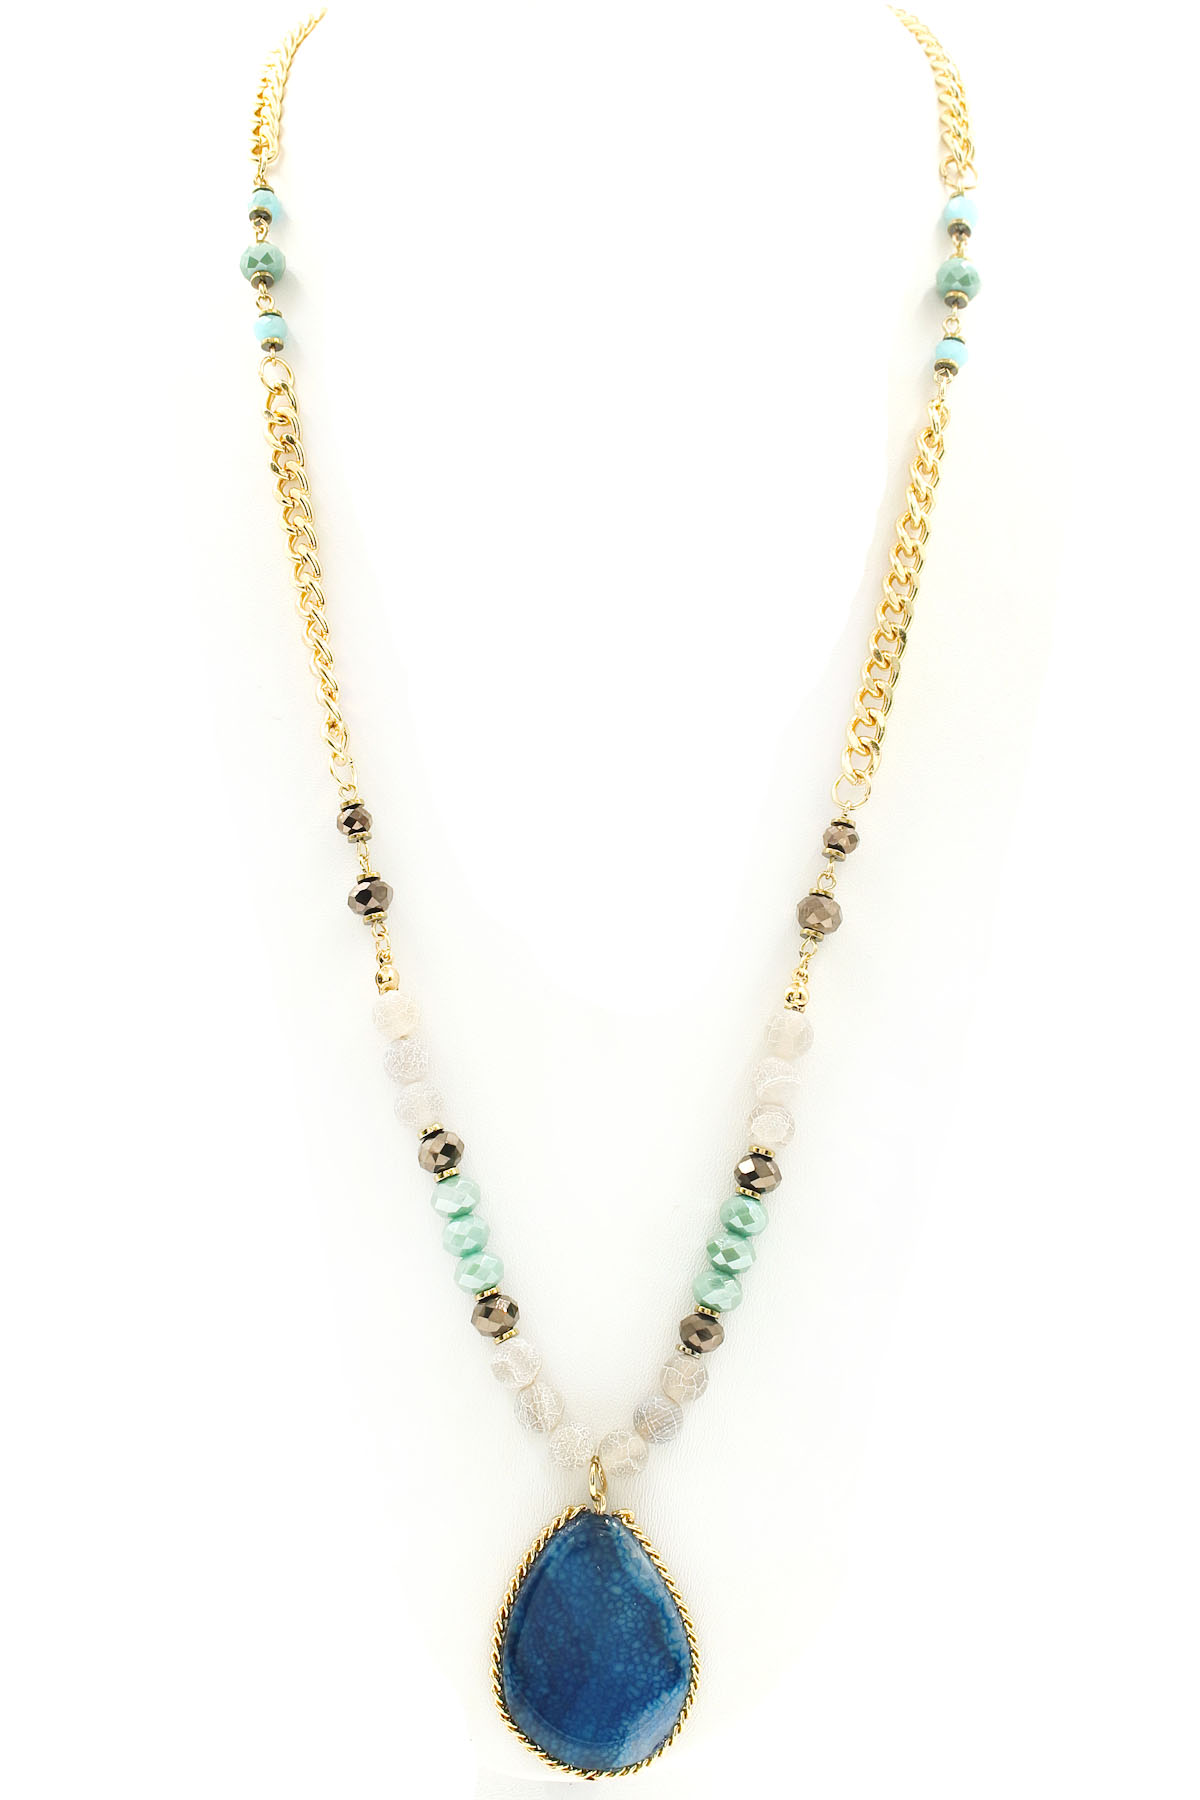 Natural Stone Jewelry : Glass bead with natural stone pendant necklace necklaces